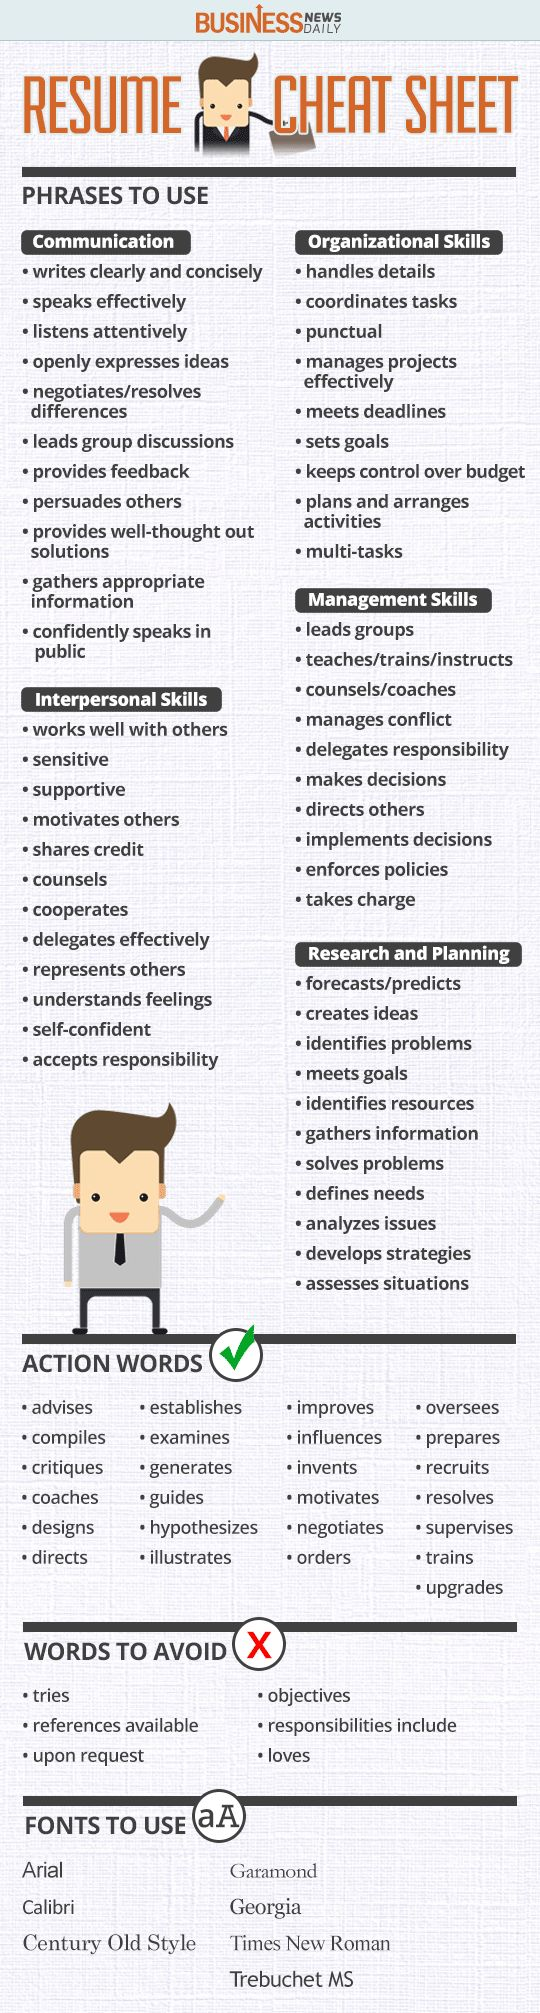 Opposenewapstandardsus  Splendid  Ideas About Resume On Pinterest  Cv Format Resume Cv And  With Marvelous Resume Cheat Sheet Infographic Andrews Almost Done With A Complete Unit On Employment Which With Extraordinary Caterer Resume Also Recommended Font For Resume In Addition Examples Of Retail Resumes And Medical Front Office Resume As Well As Fillable Resume Additionally Achievements To Put On A Resume From Pinterestcom With Opposenewapstandardsus  Marvelous  Ideas About Resume On Pinterest  Cv Format Resume Cv And  With Extraordinary Resume Cheat Sheet Infographic Andrews Almost Done With A Complete Unit On Employment Which And Splendid Caterer Resume Also Recommended Font For Resume In Addition Examples Of Retail Resumes From Pinterestcom